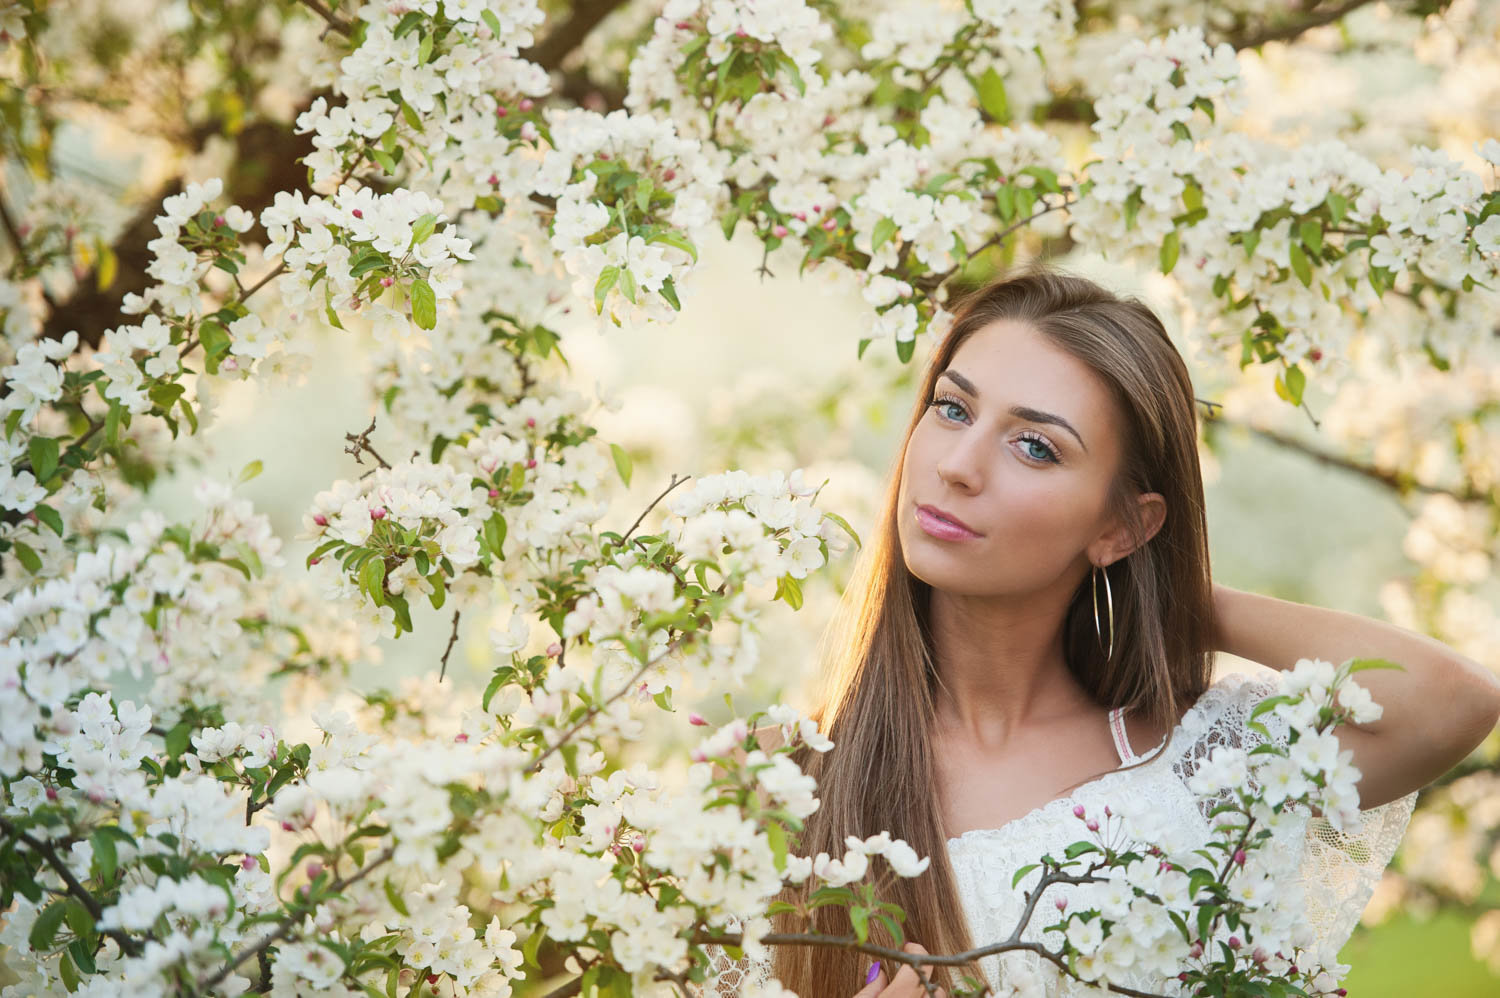 Nature senior picture in MN girl with apple blossoms